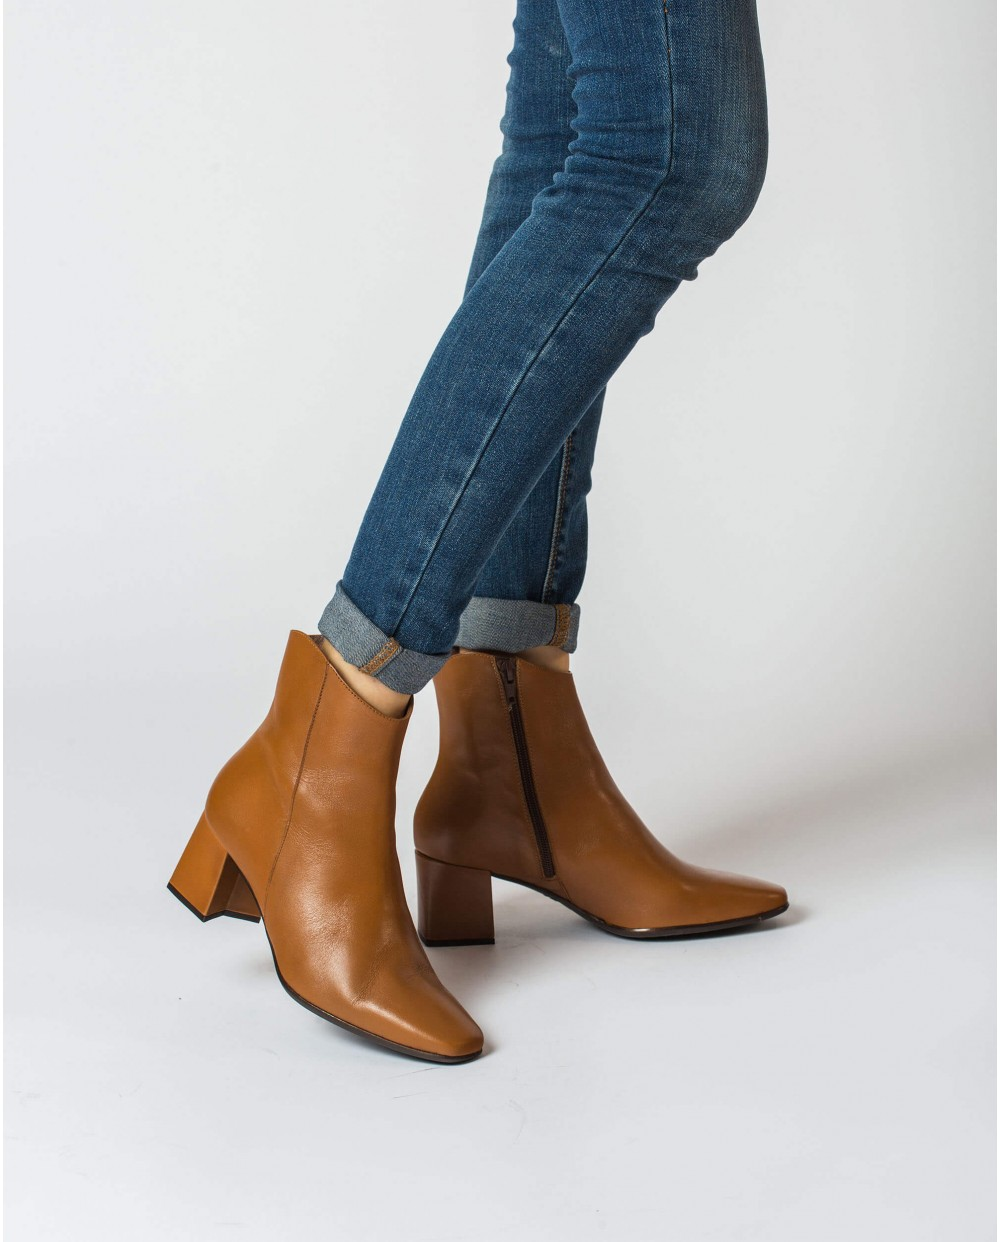 Wonders-Ankle Boots-Leather ankle boot with a square toe